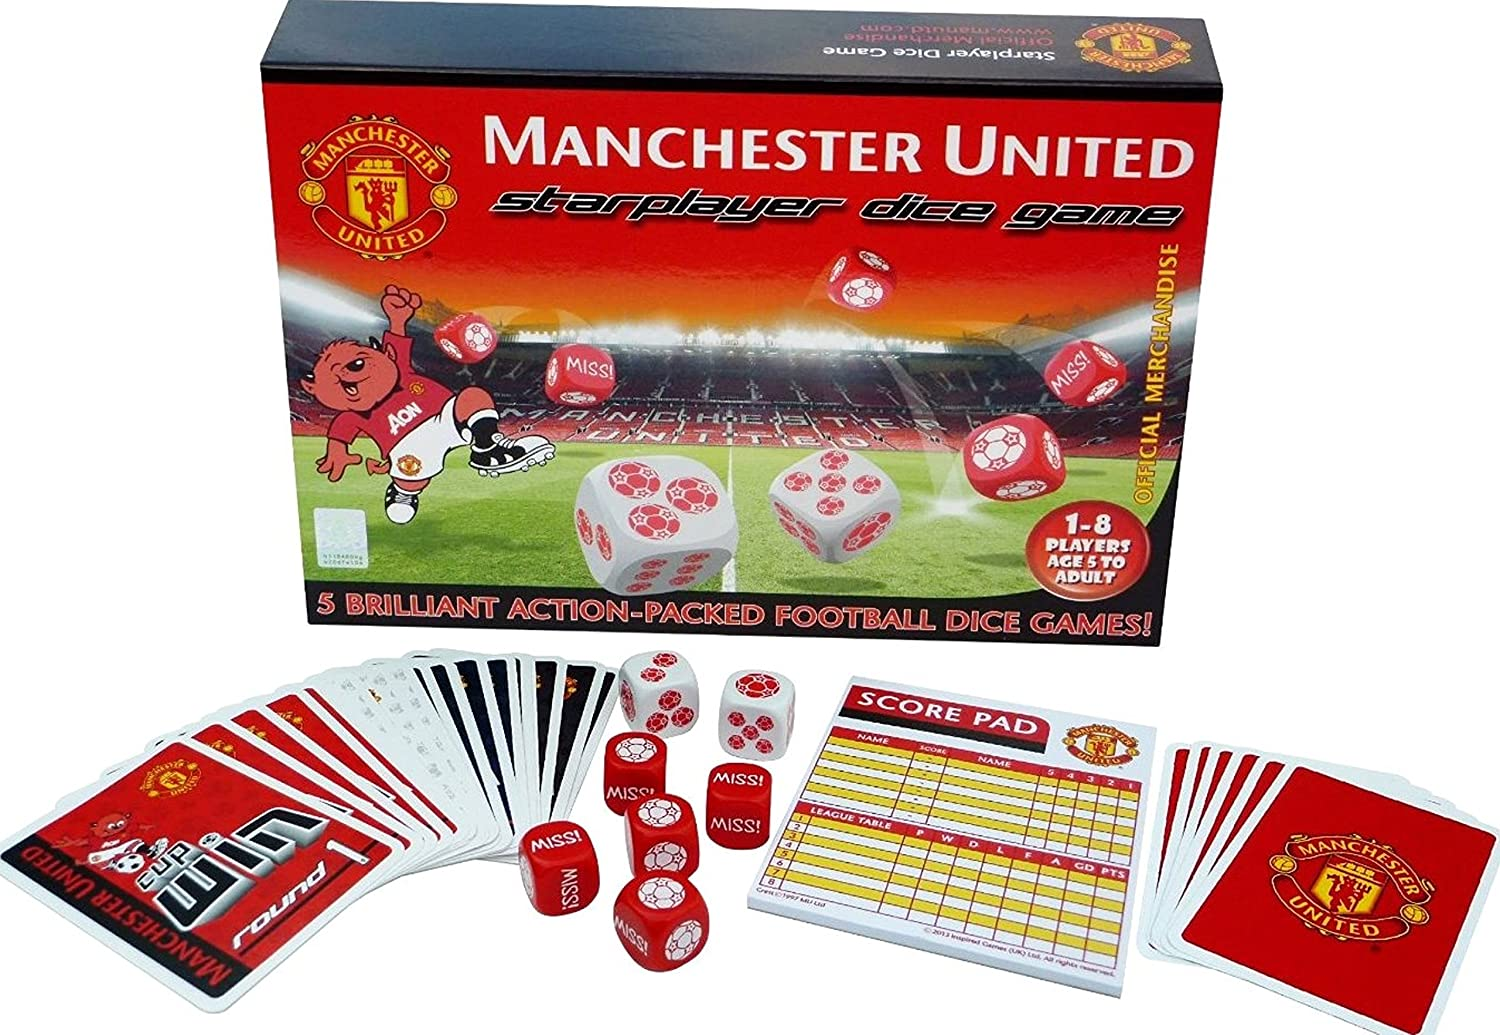 5f90d2b6cf5 Gift Ideas - Official Manchester United FC Ultimate Stationary Set - A  Great Present For Football Fans